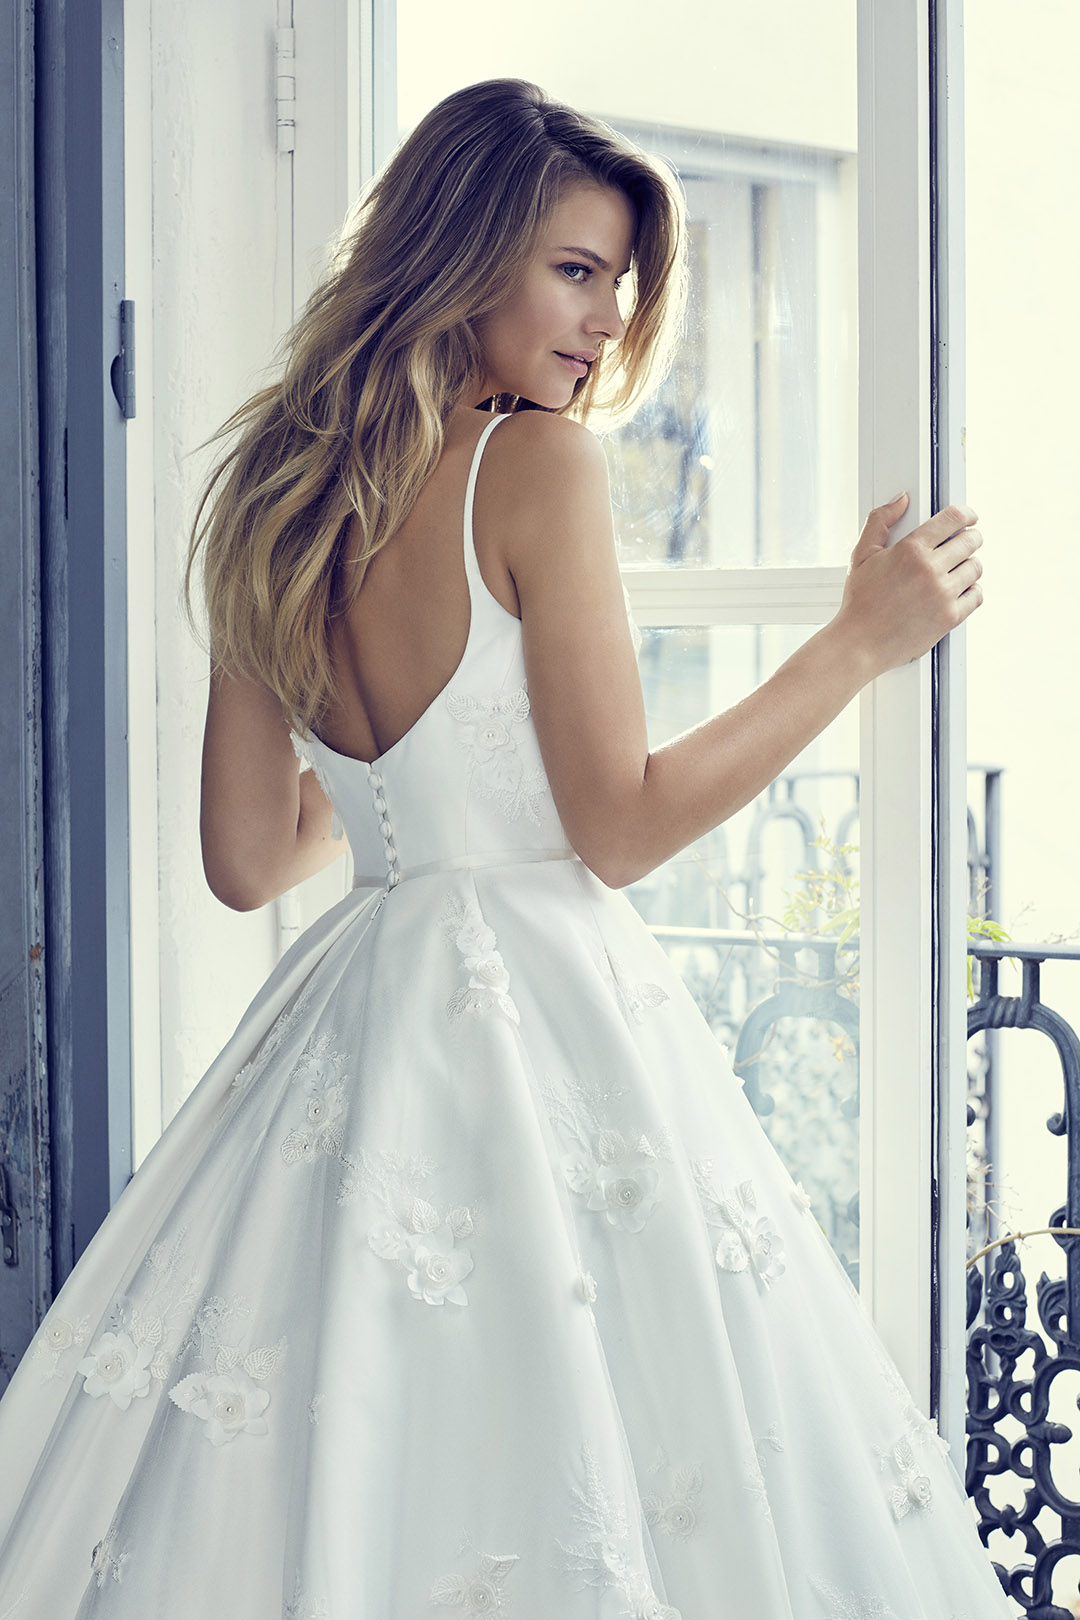 eternity2-wedding-dresses-uk-suzanne-neville-collection-hd-2019